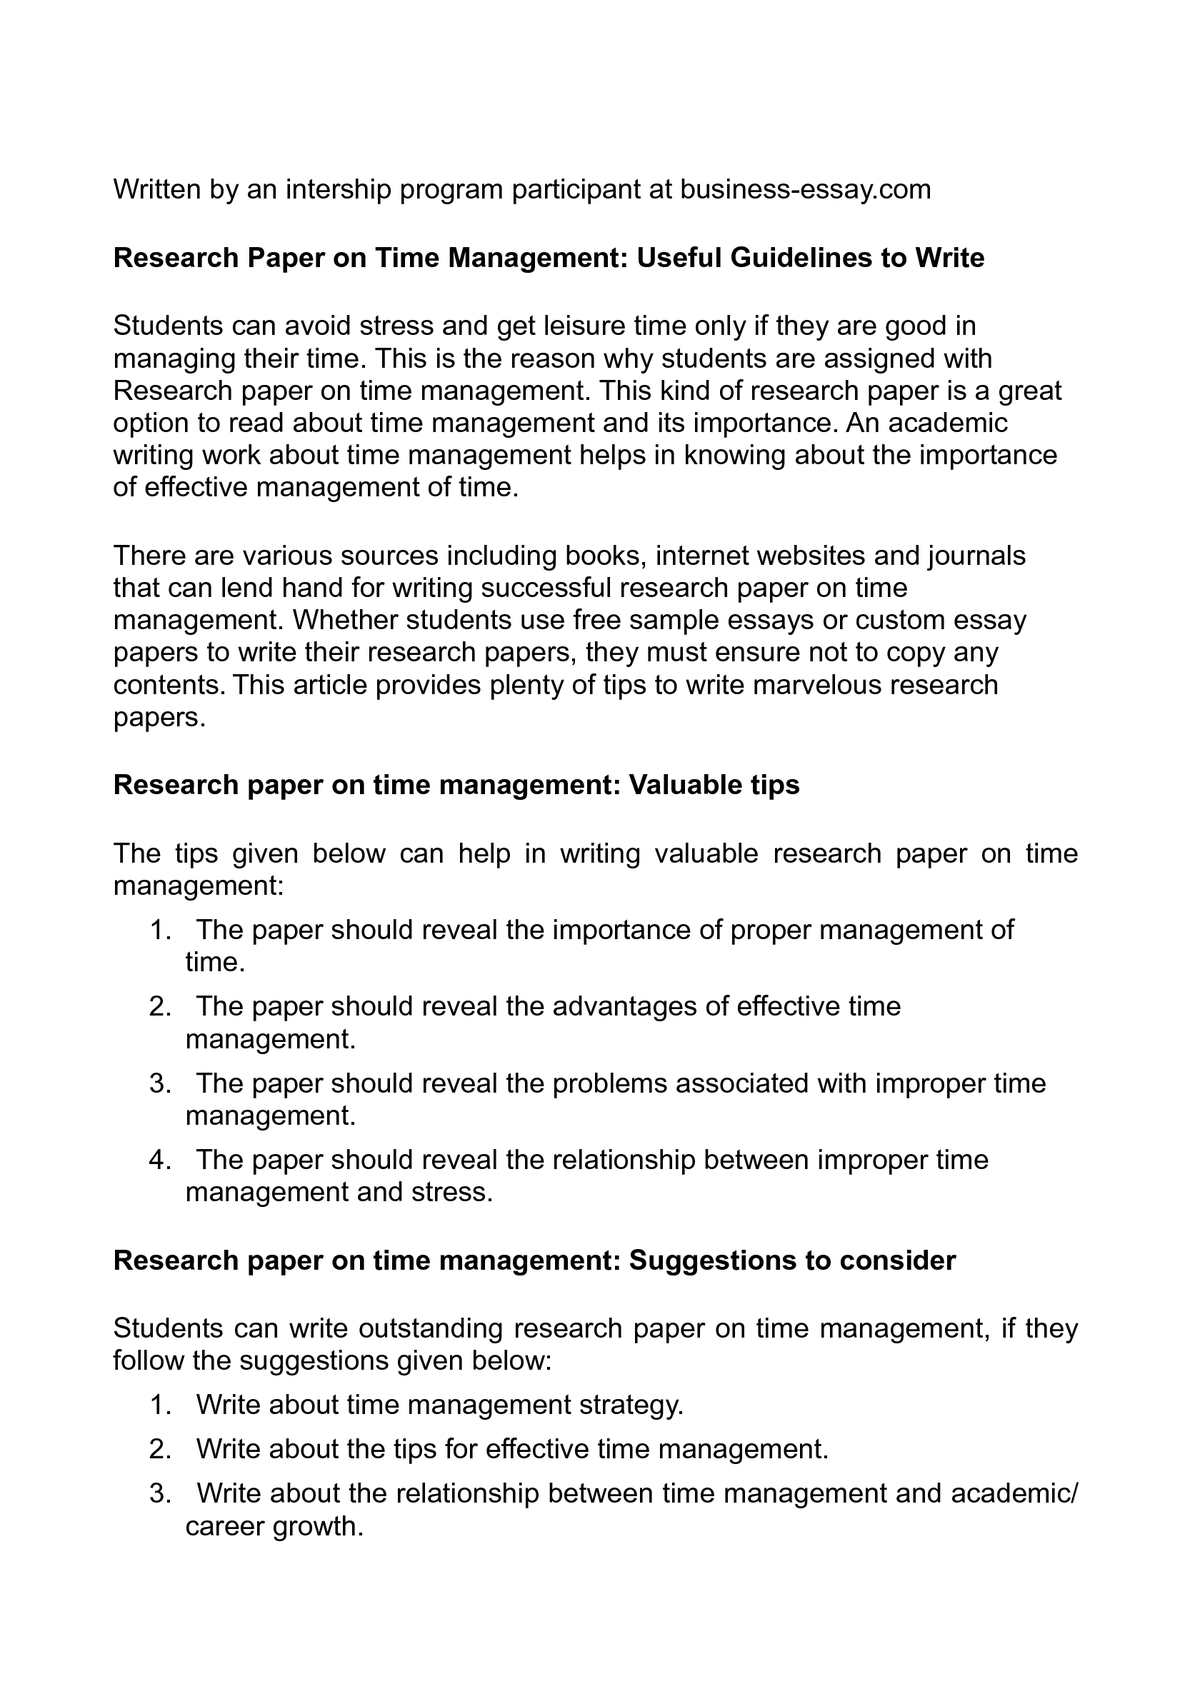 Calam o research paper on time management useful guidelines to write